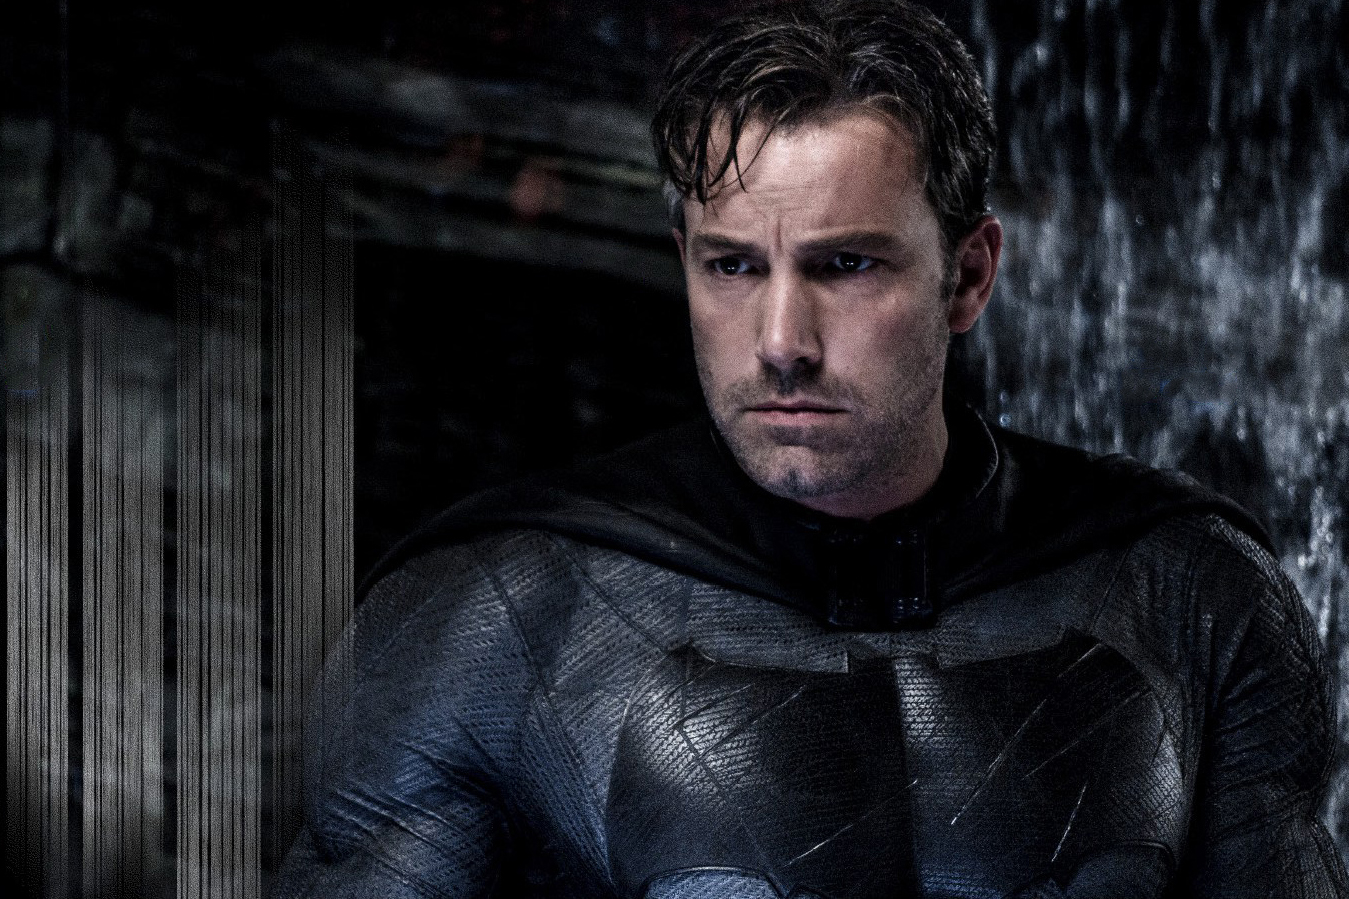 Ben Affleck Is Confirmed to Direct and Star in Standalone Batman Movie